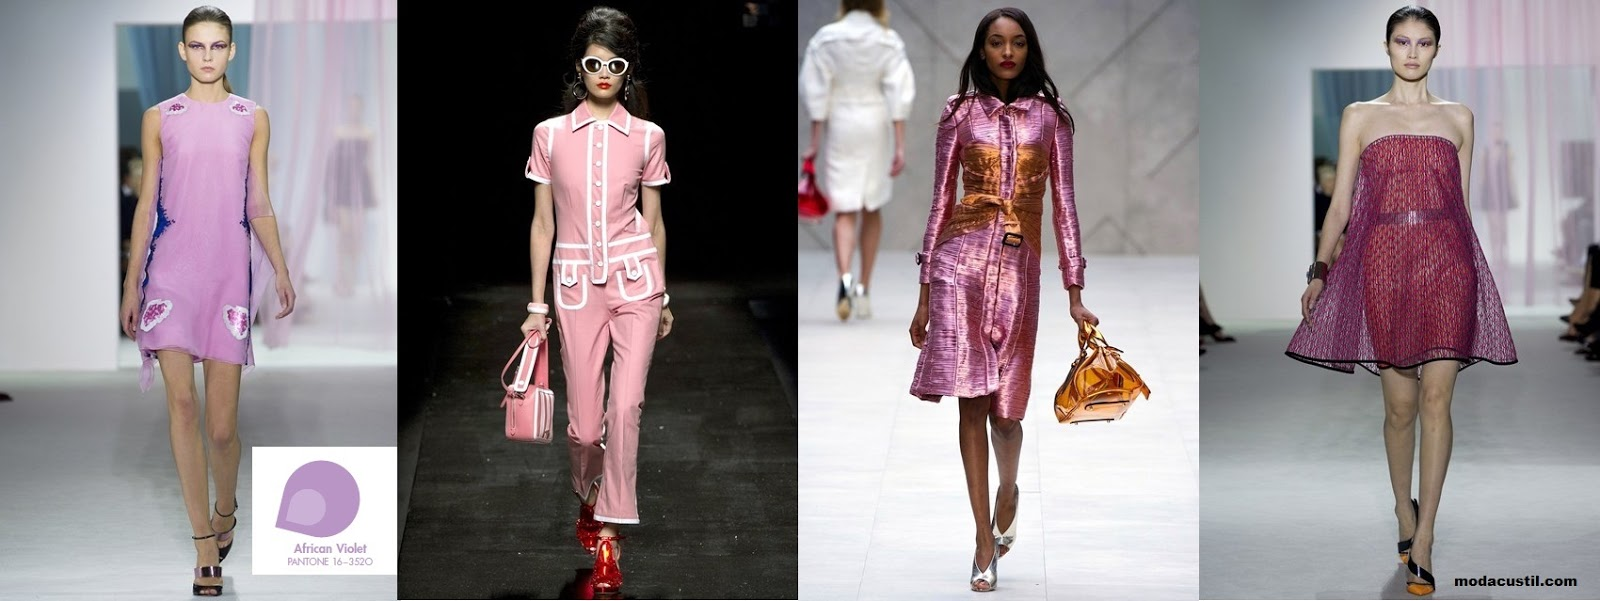 African Violet - Colors Spring Summer Fashion 2013